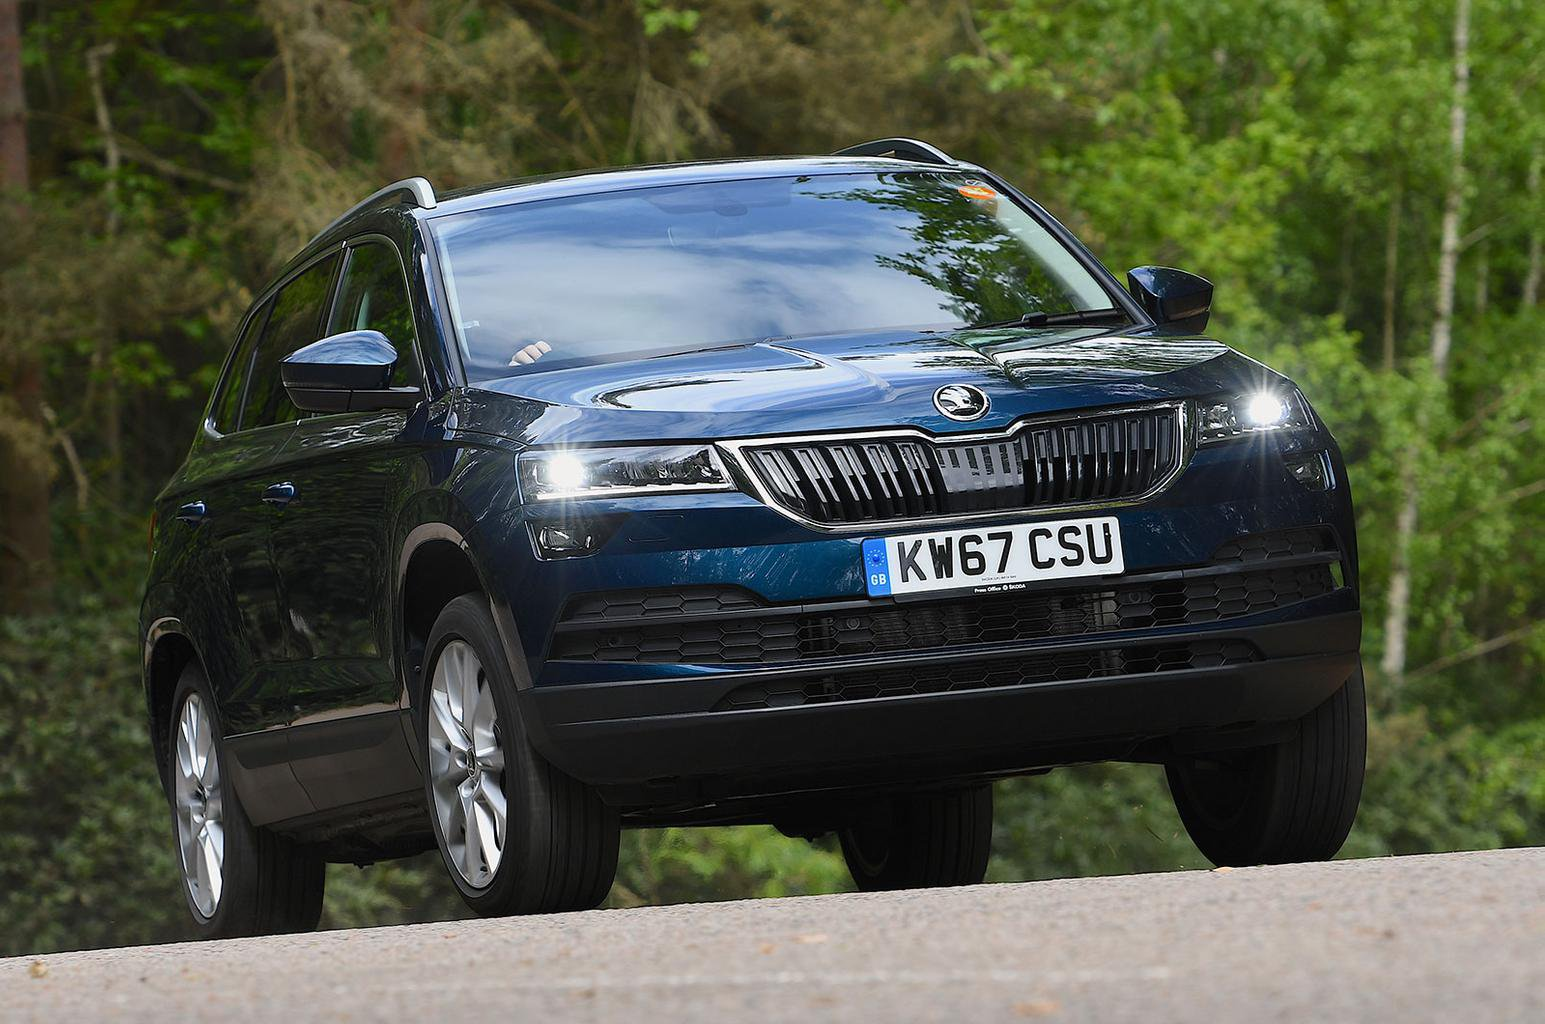 Skoda Karoq long-term test review